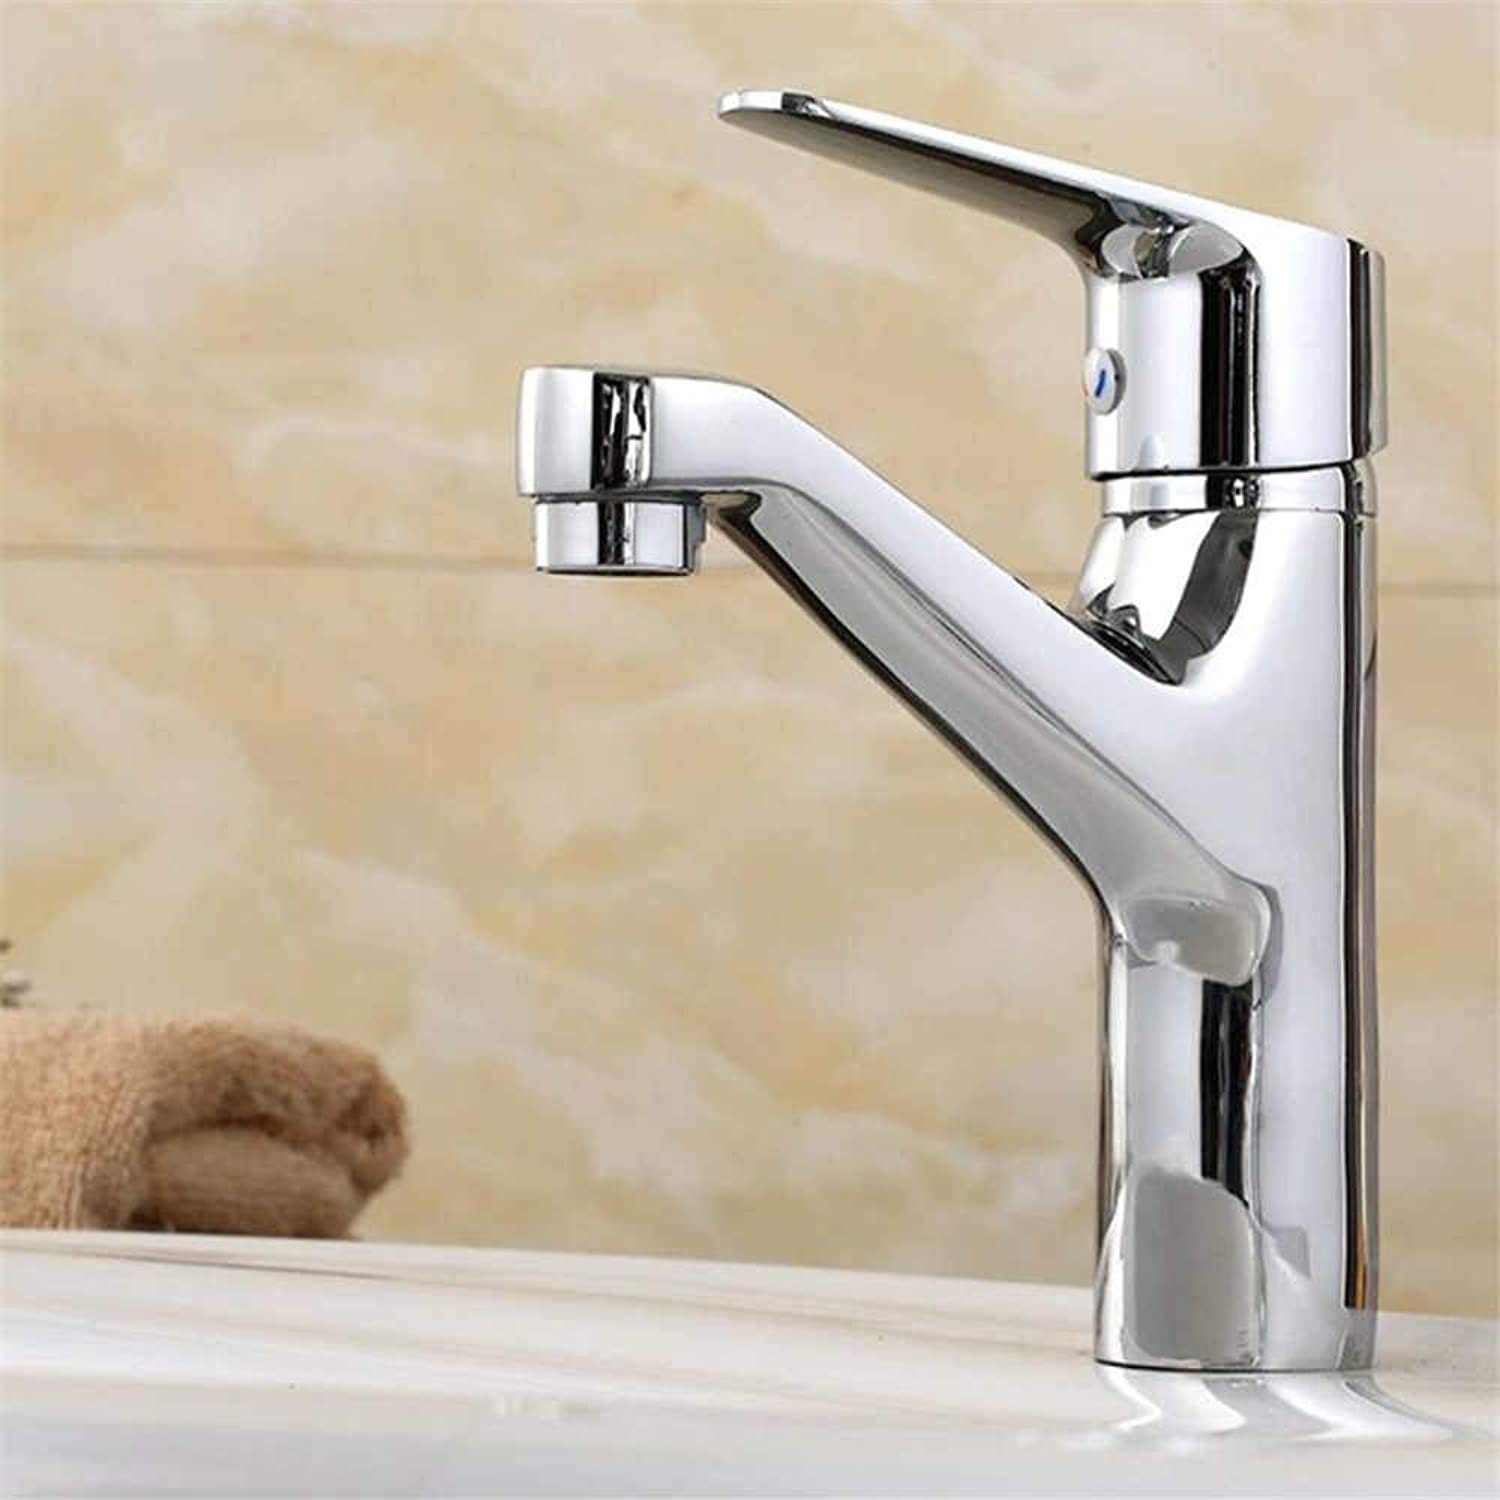 Basin Mixer Tap Bathroom Bathroom Washbasin Faucet Copper Hot and Cold Single Hole Wash Basin Faucet